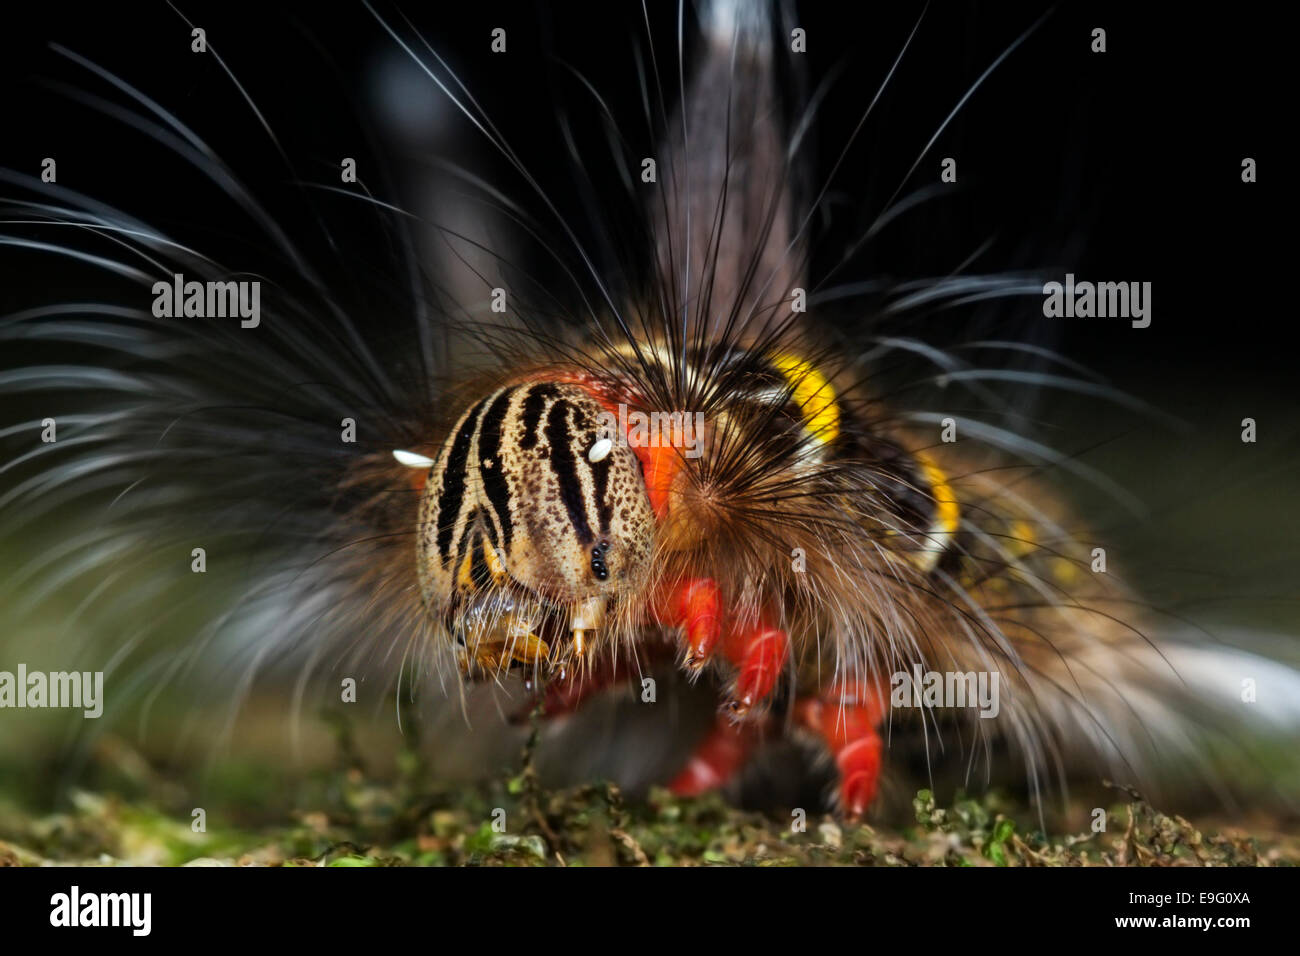 Close up of brightly coloured hairy caterpillar of Lasiocampidae species in tropical rainforest of Borneo - Stock Image